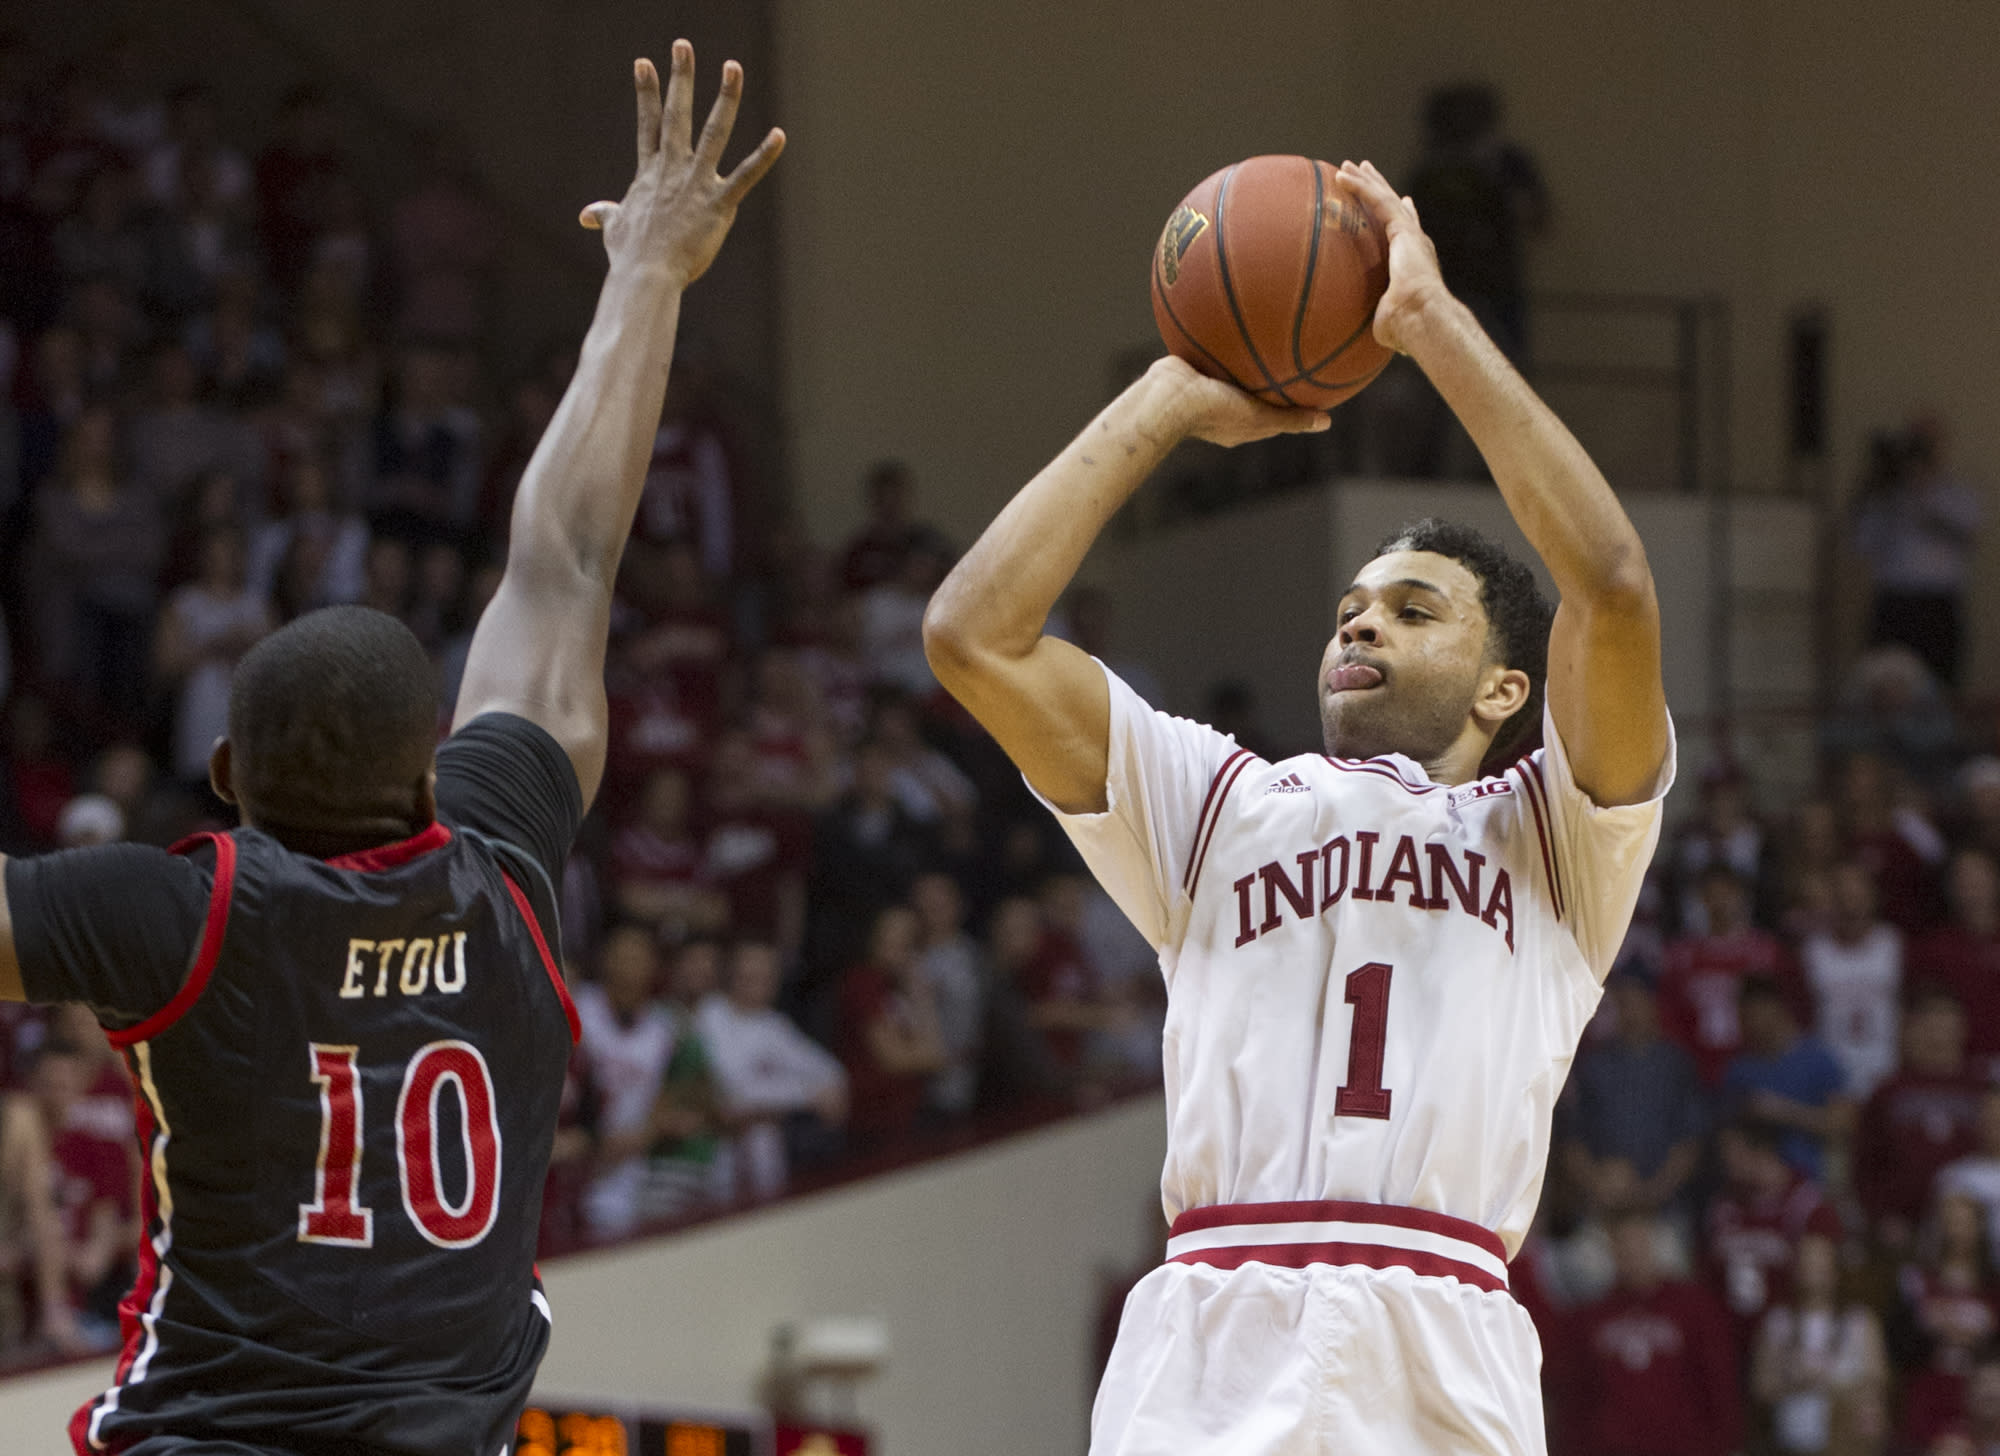 Late spurt helps No. 22 Hoosiers fend off Rutgers 72-64